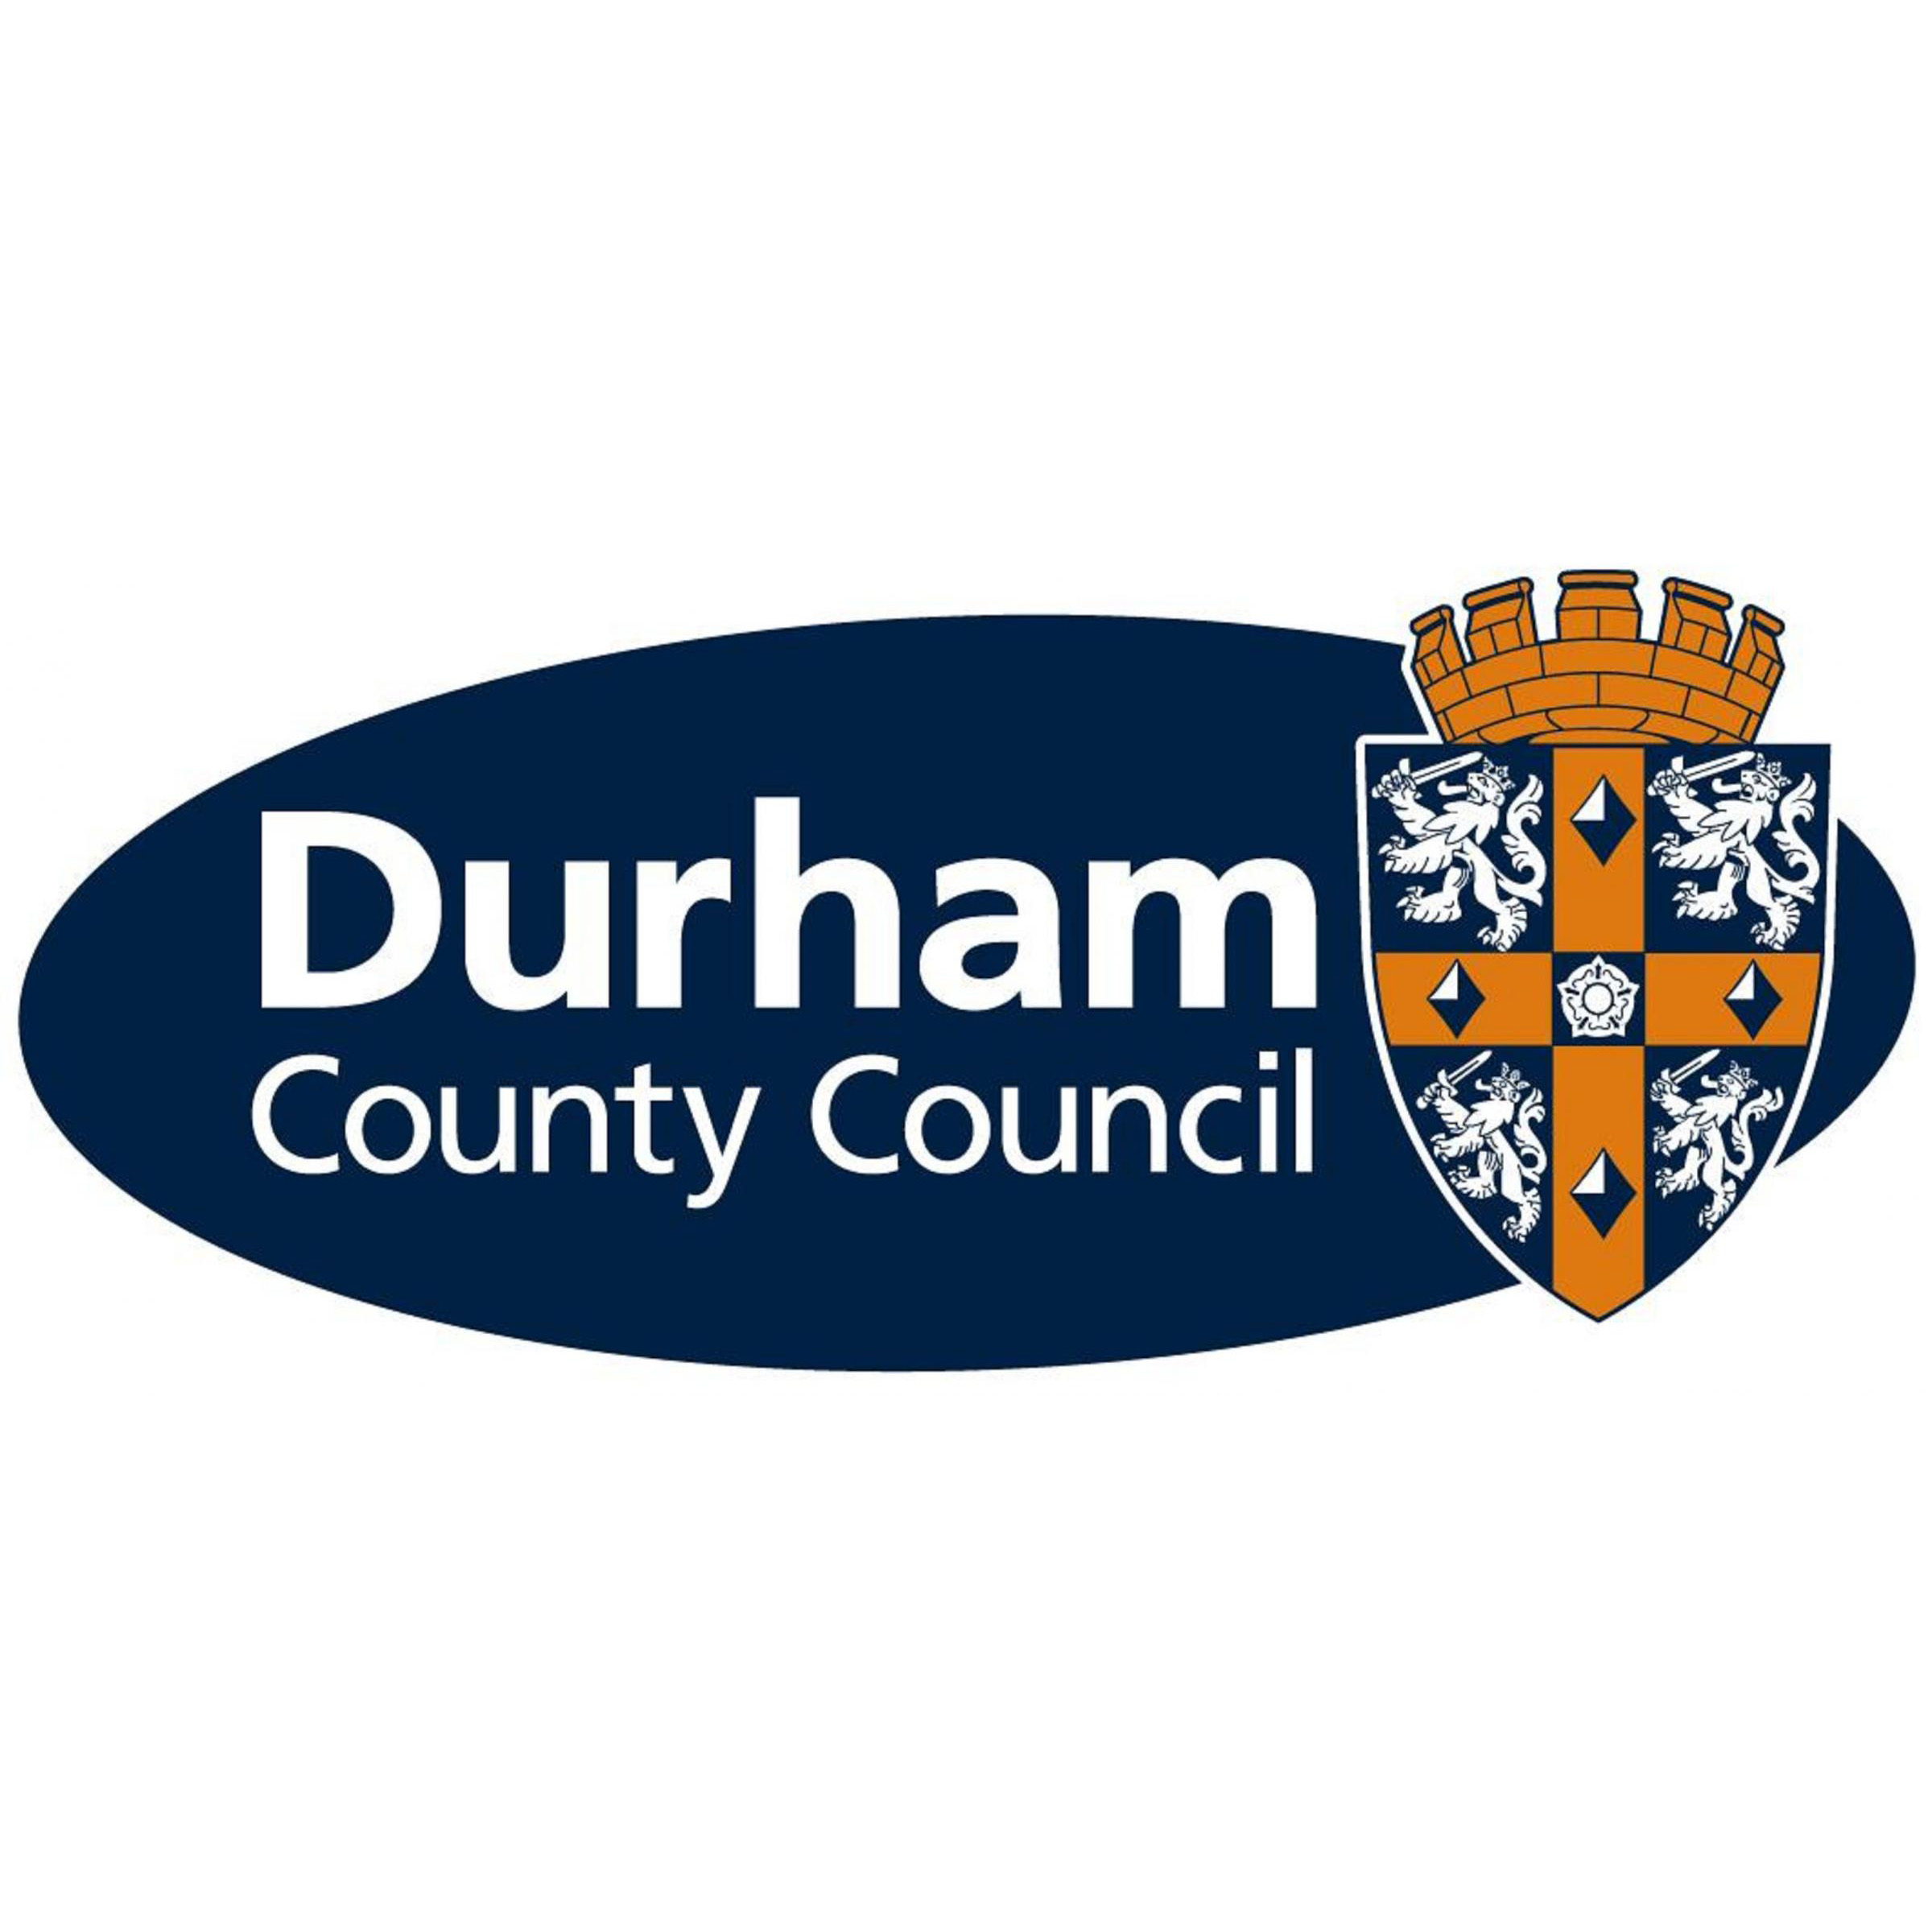 Durham County Council has removed the restriction which only allowed camping at Holbeck House Farm between April and September